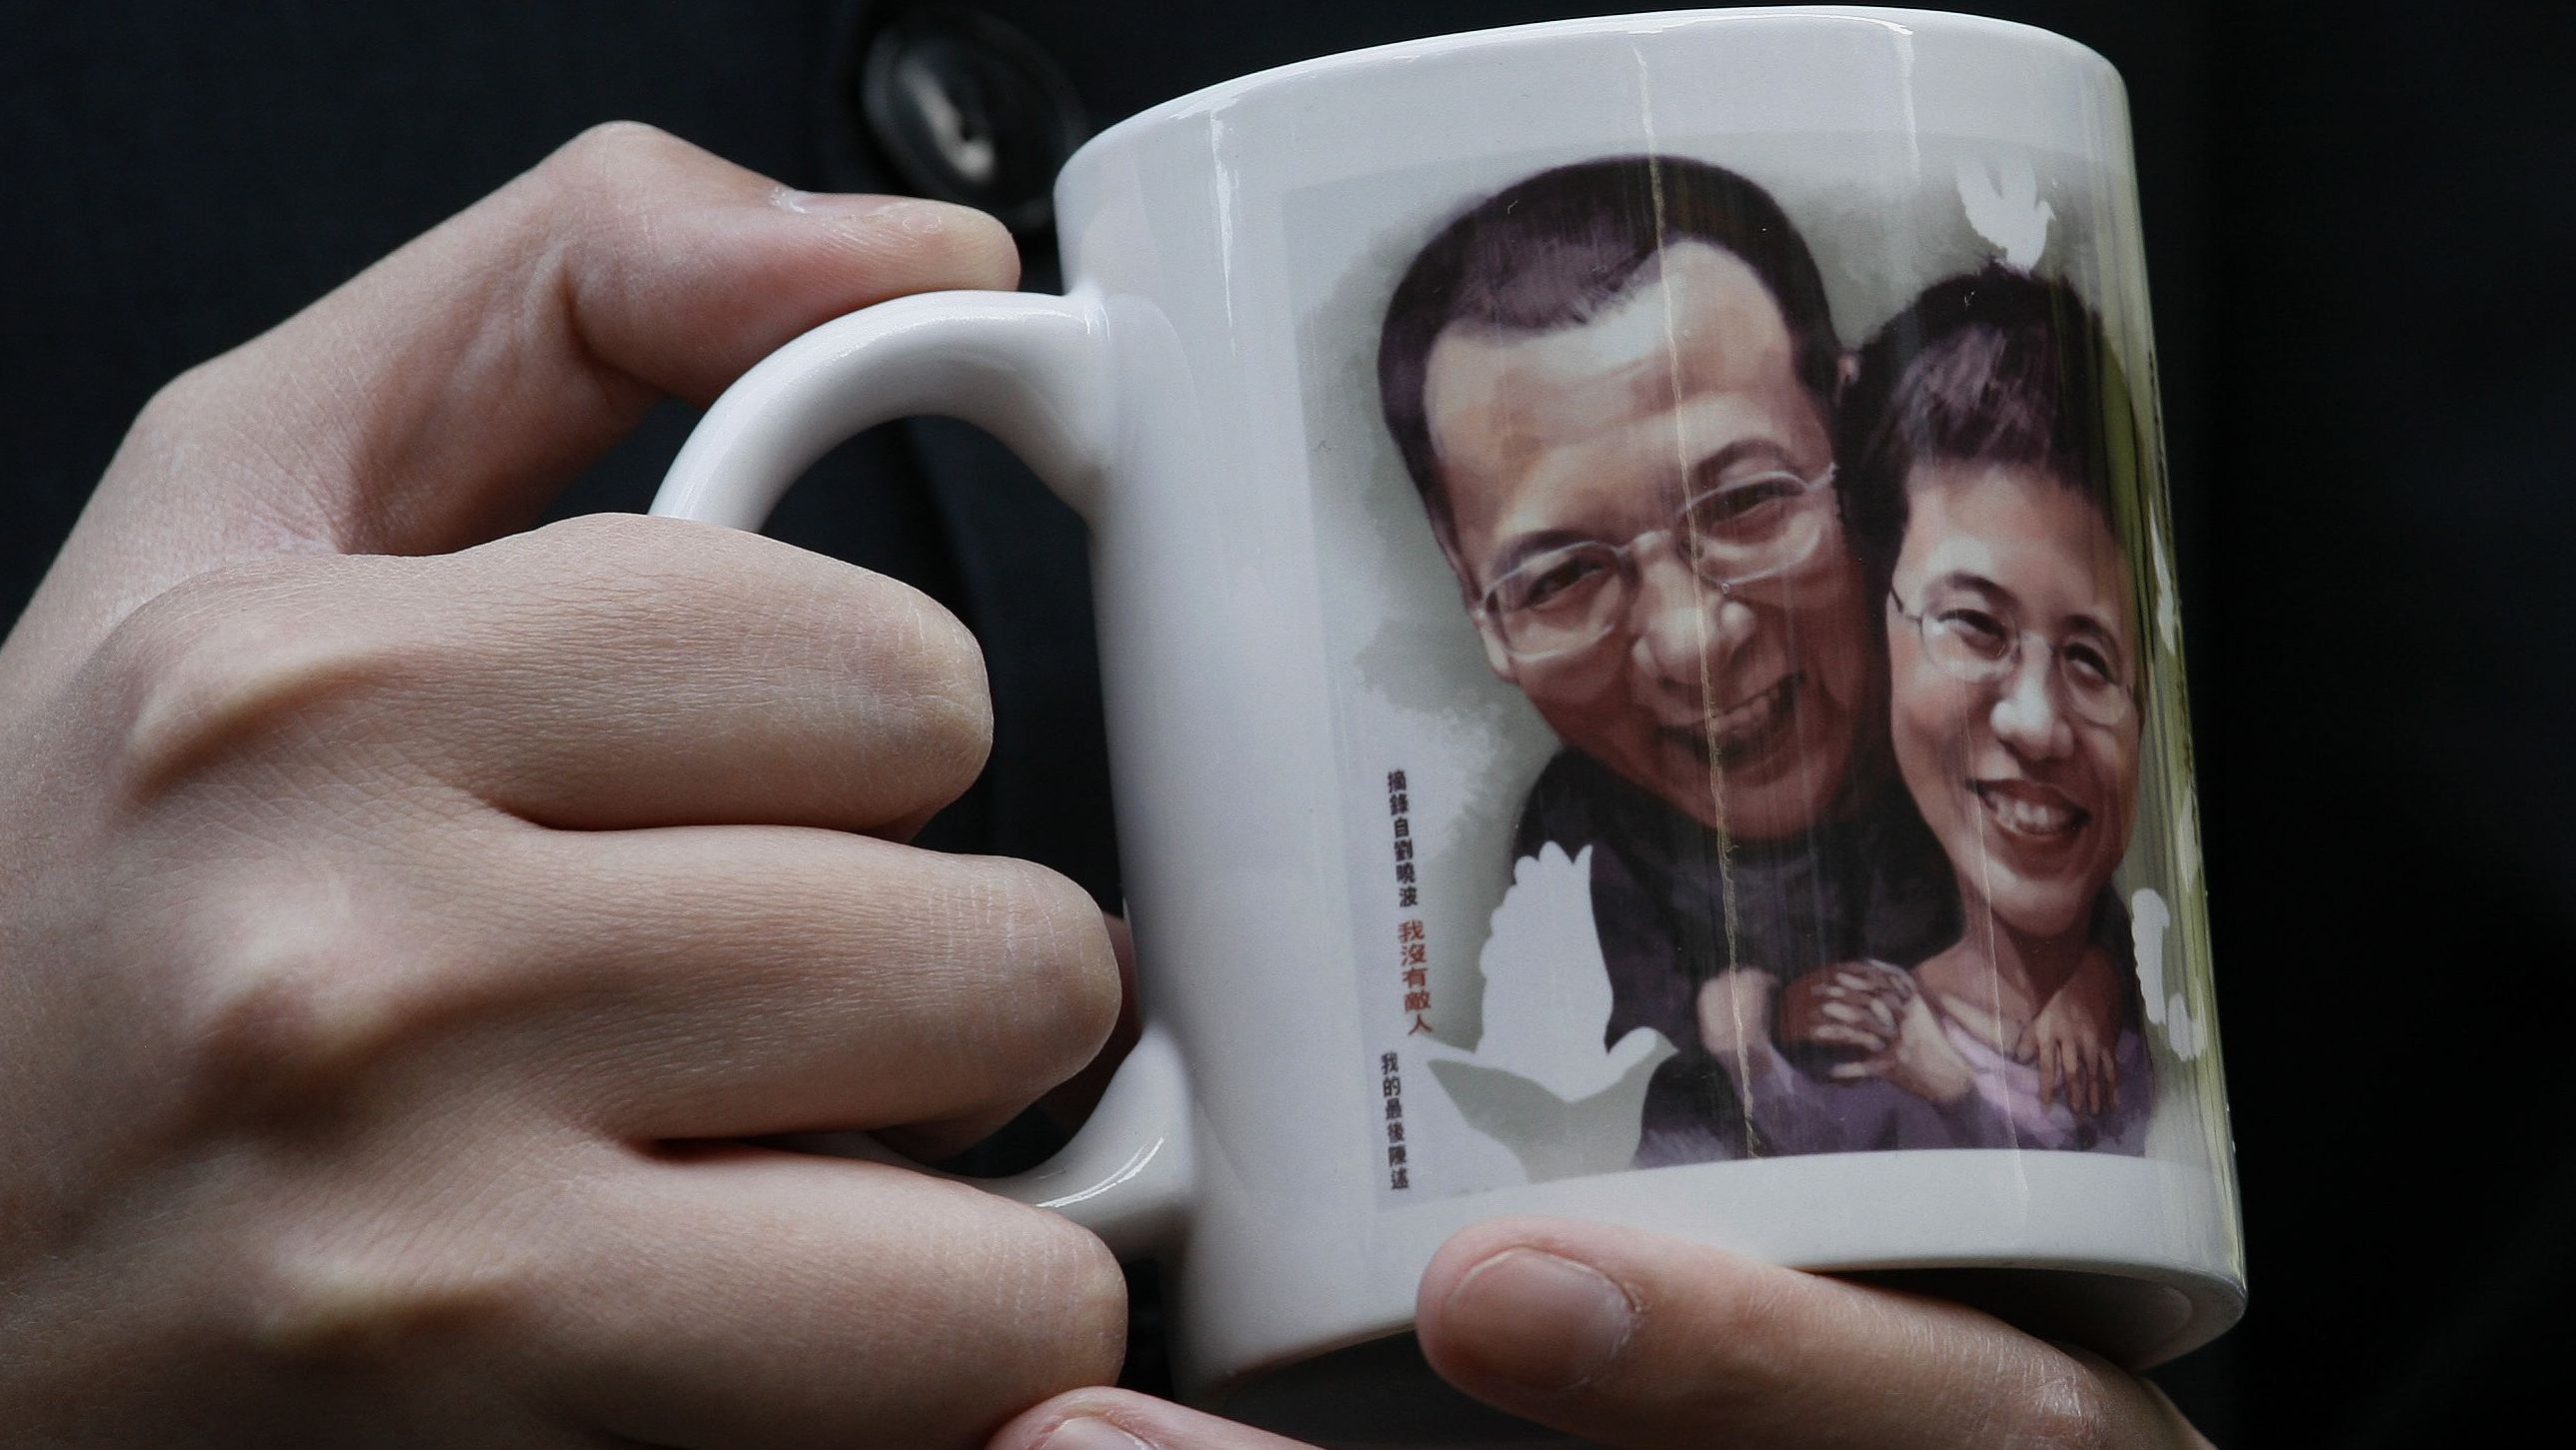 A protester holds a mug featuring an image of jailed Chinese dissident Liu Xiaobo and his wife Liu Xia outside Hong Kong's Legislative Council December 8, 2010, before several lawmakers leave for Oslo to attend the Nobel Prize presentation ceremony. China is conducting a sweeping crackdown on dissent ahead of this week's awarding of the Nobel Peace Prize to jailed dissident Liu Xiaobo, casting the net wide to prevent friends and family attending.   REUTERS/Bobby Yip   (CHINA - Tags: POLITICS) - GM1E6C817NX01